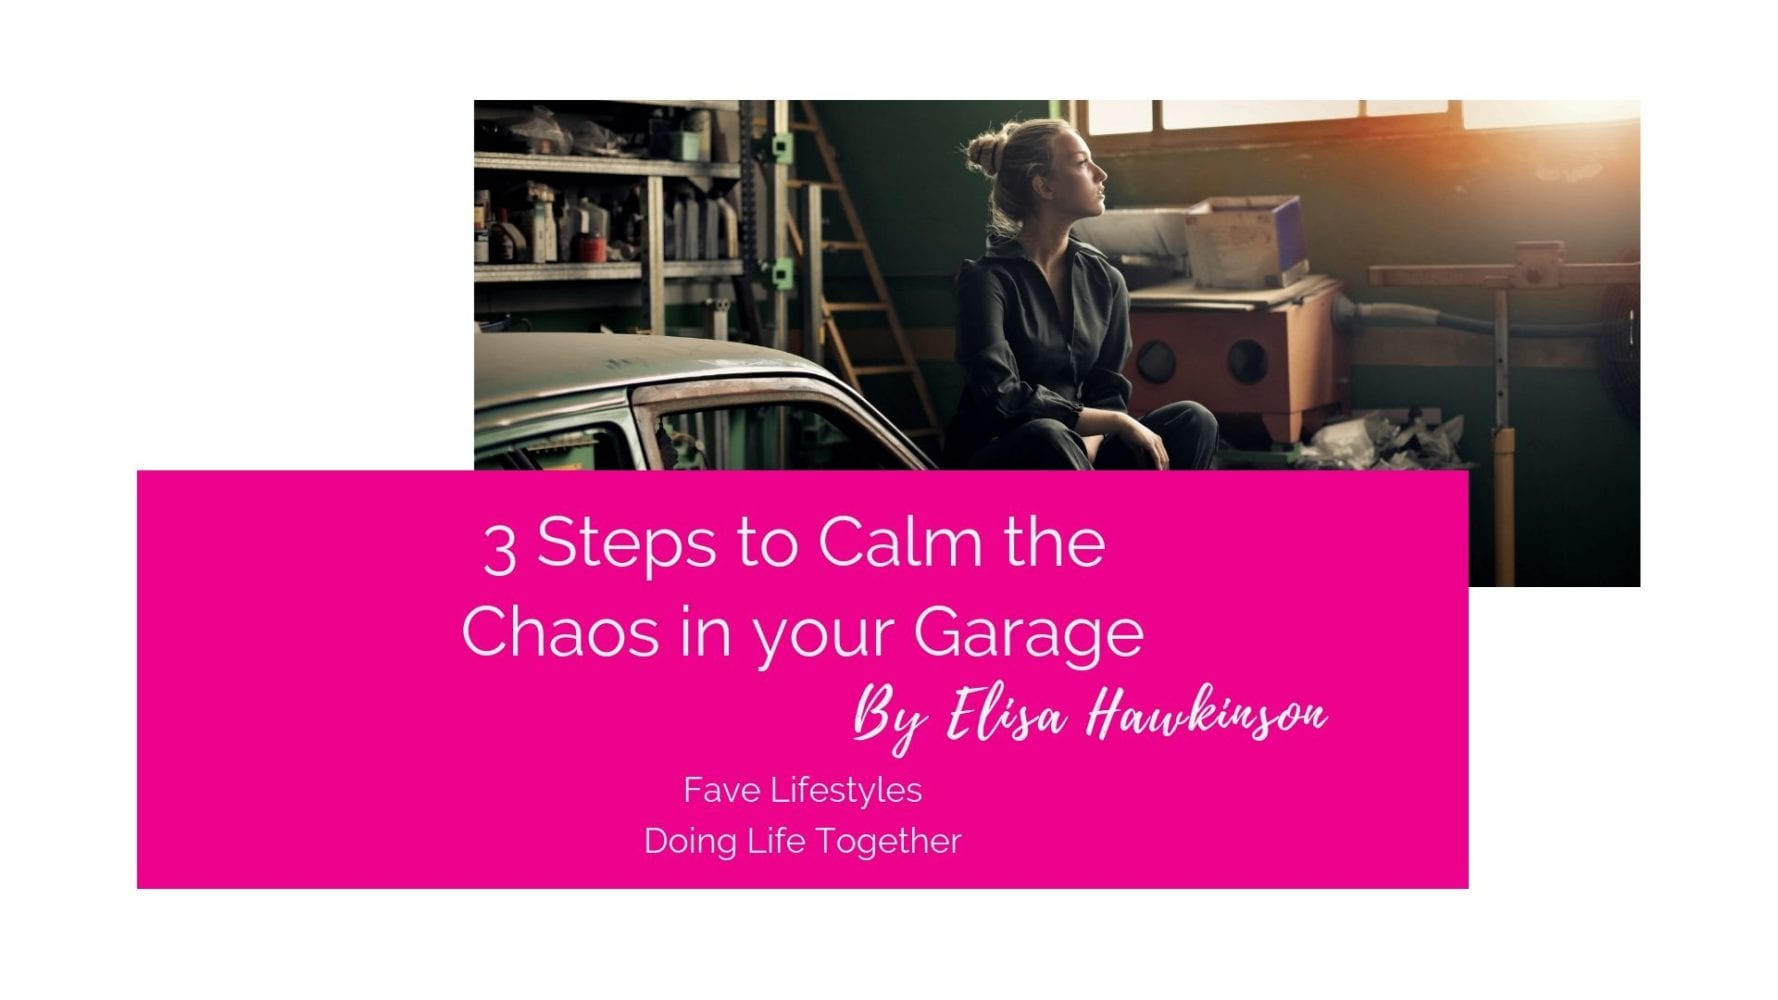 3 Steps to Calm the Chaos in your Garage